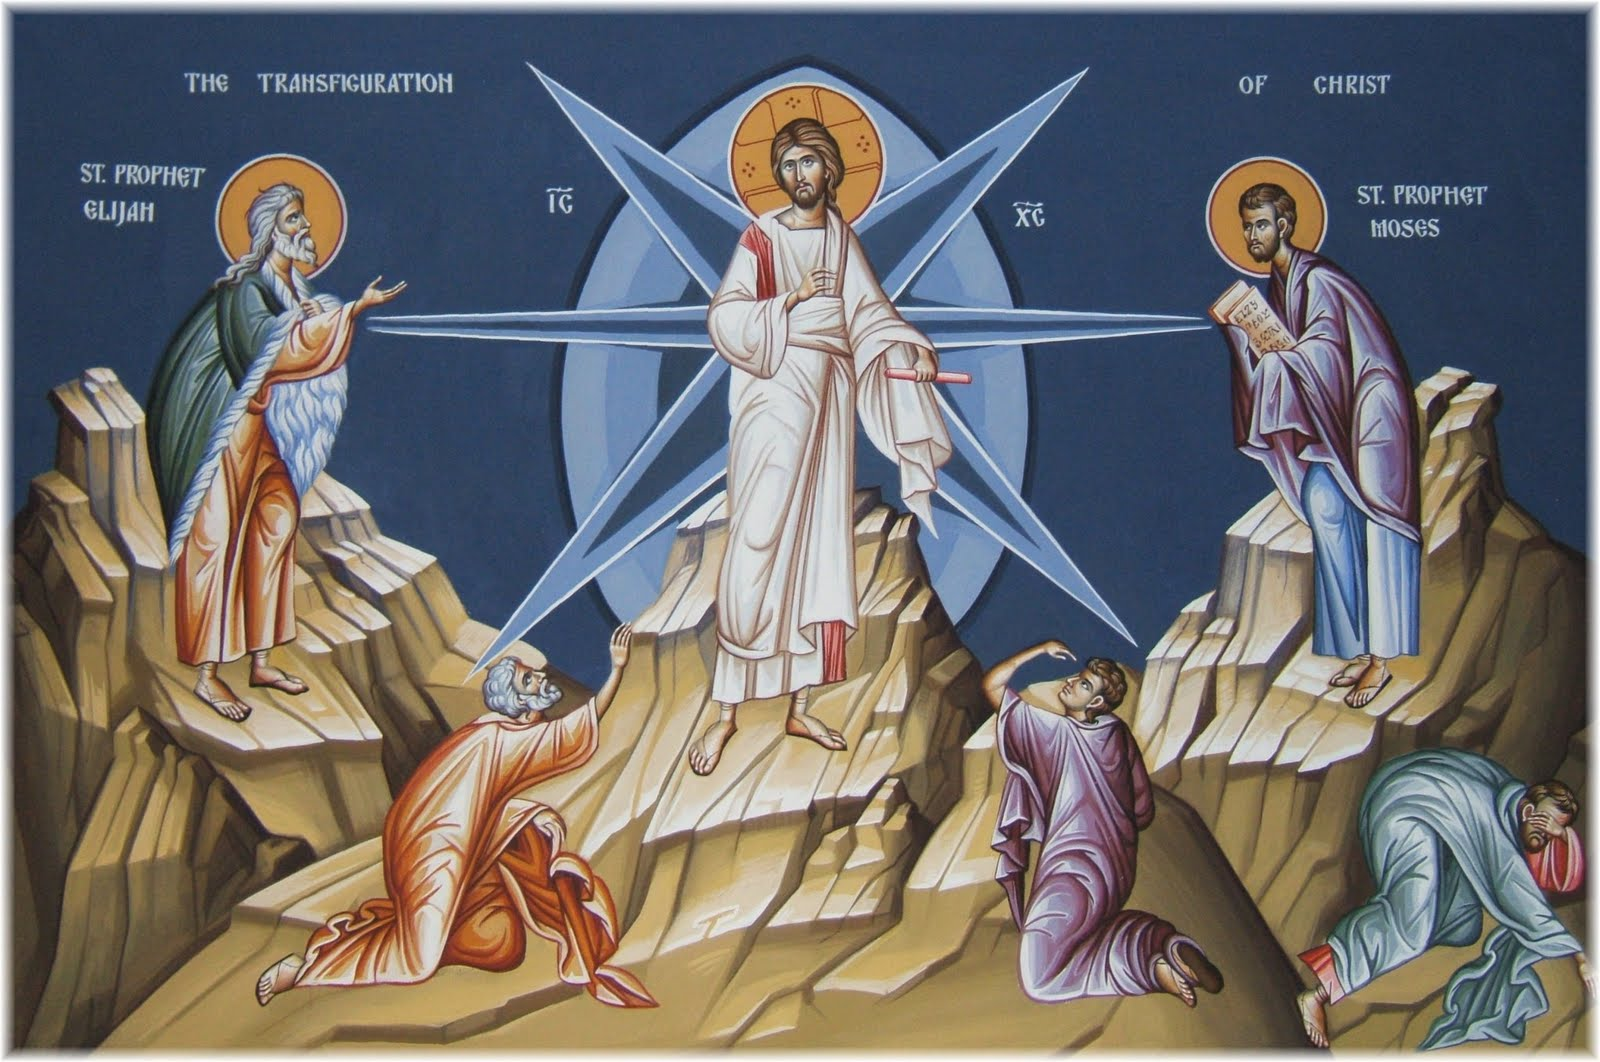 Patrick Comerford: The Transfiguration: finding meaning in icons ...